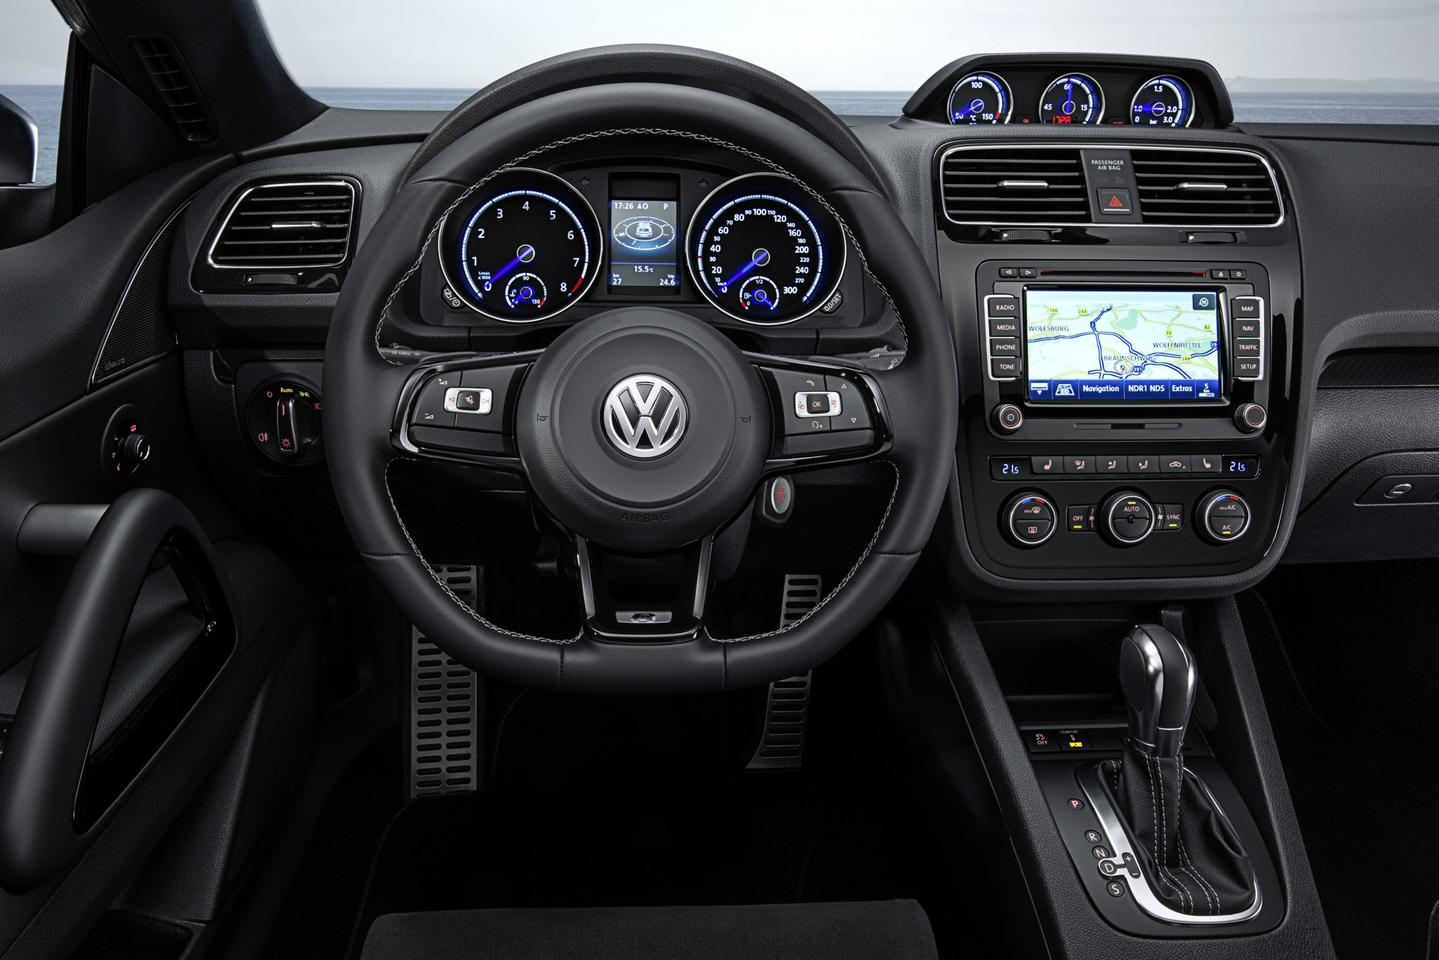 VW's new Scirocco has a refreshed interior